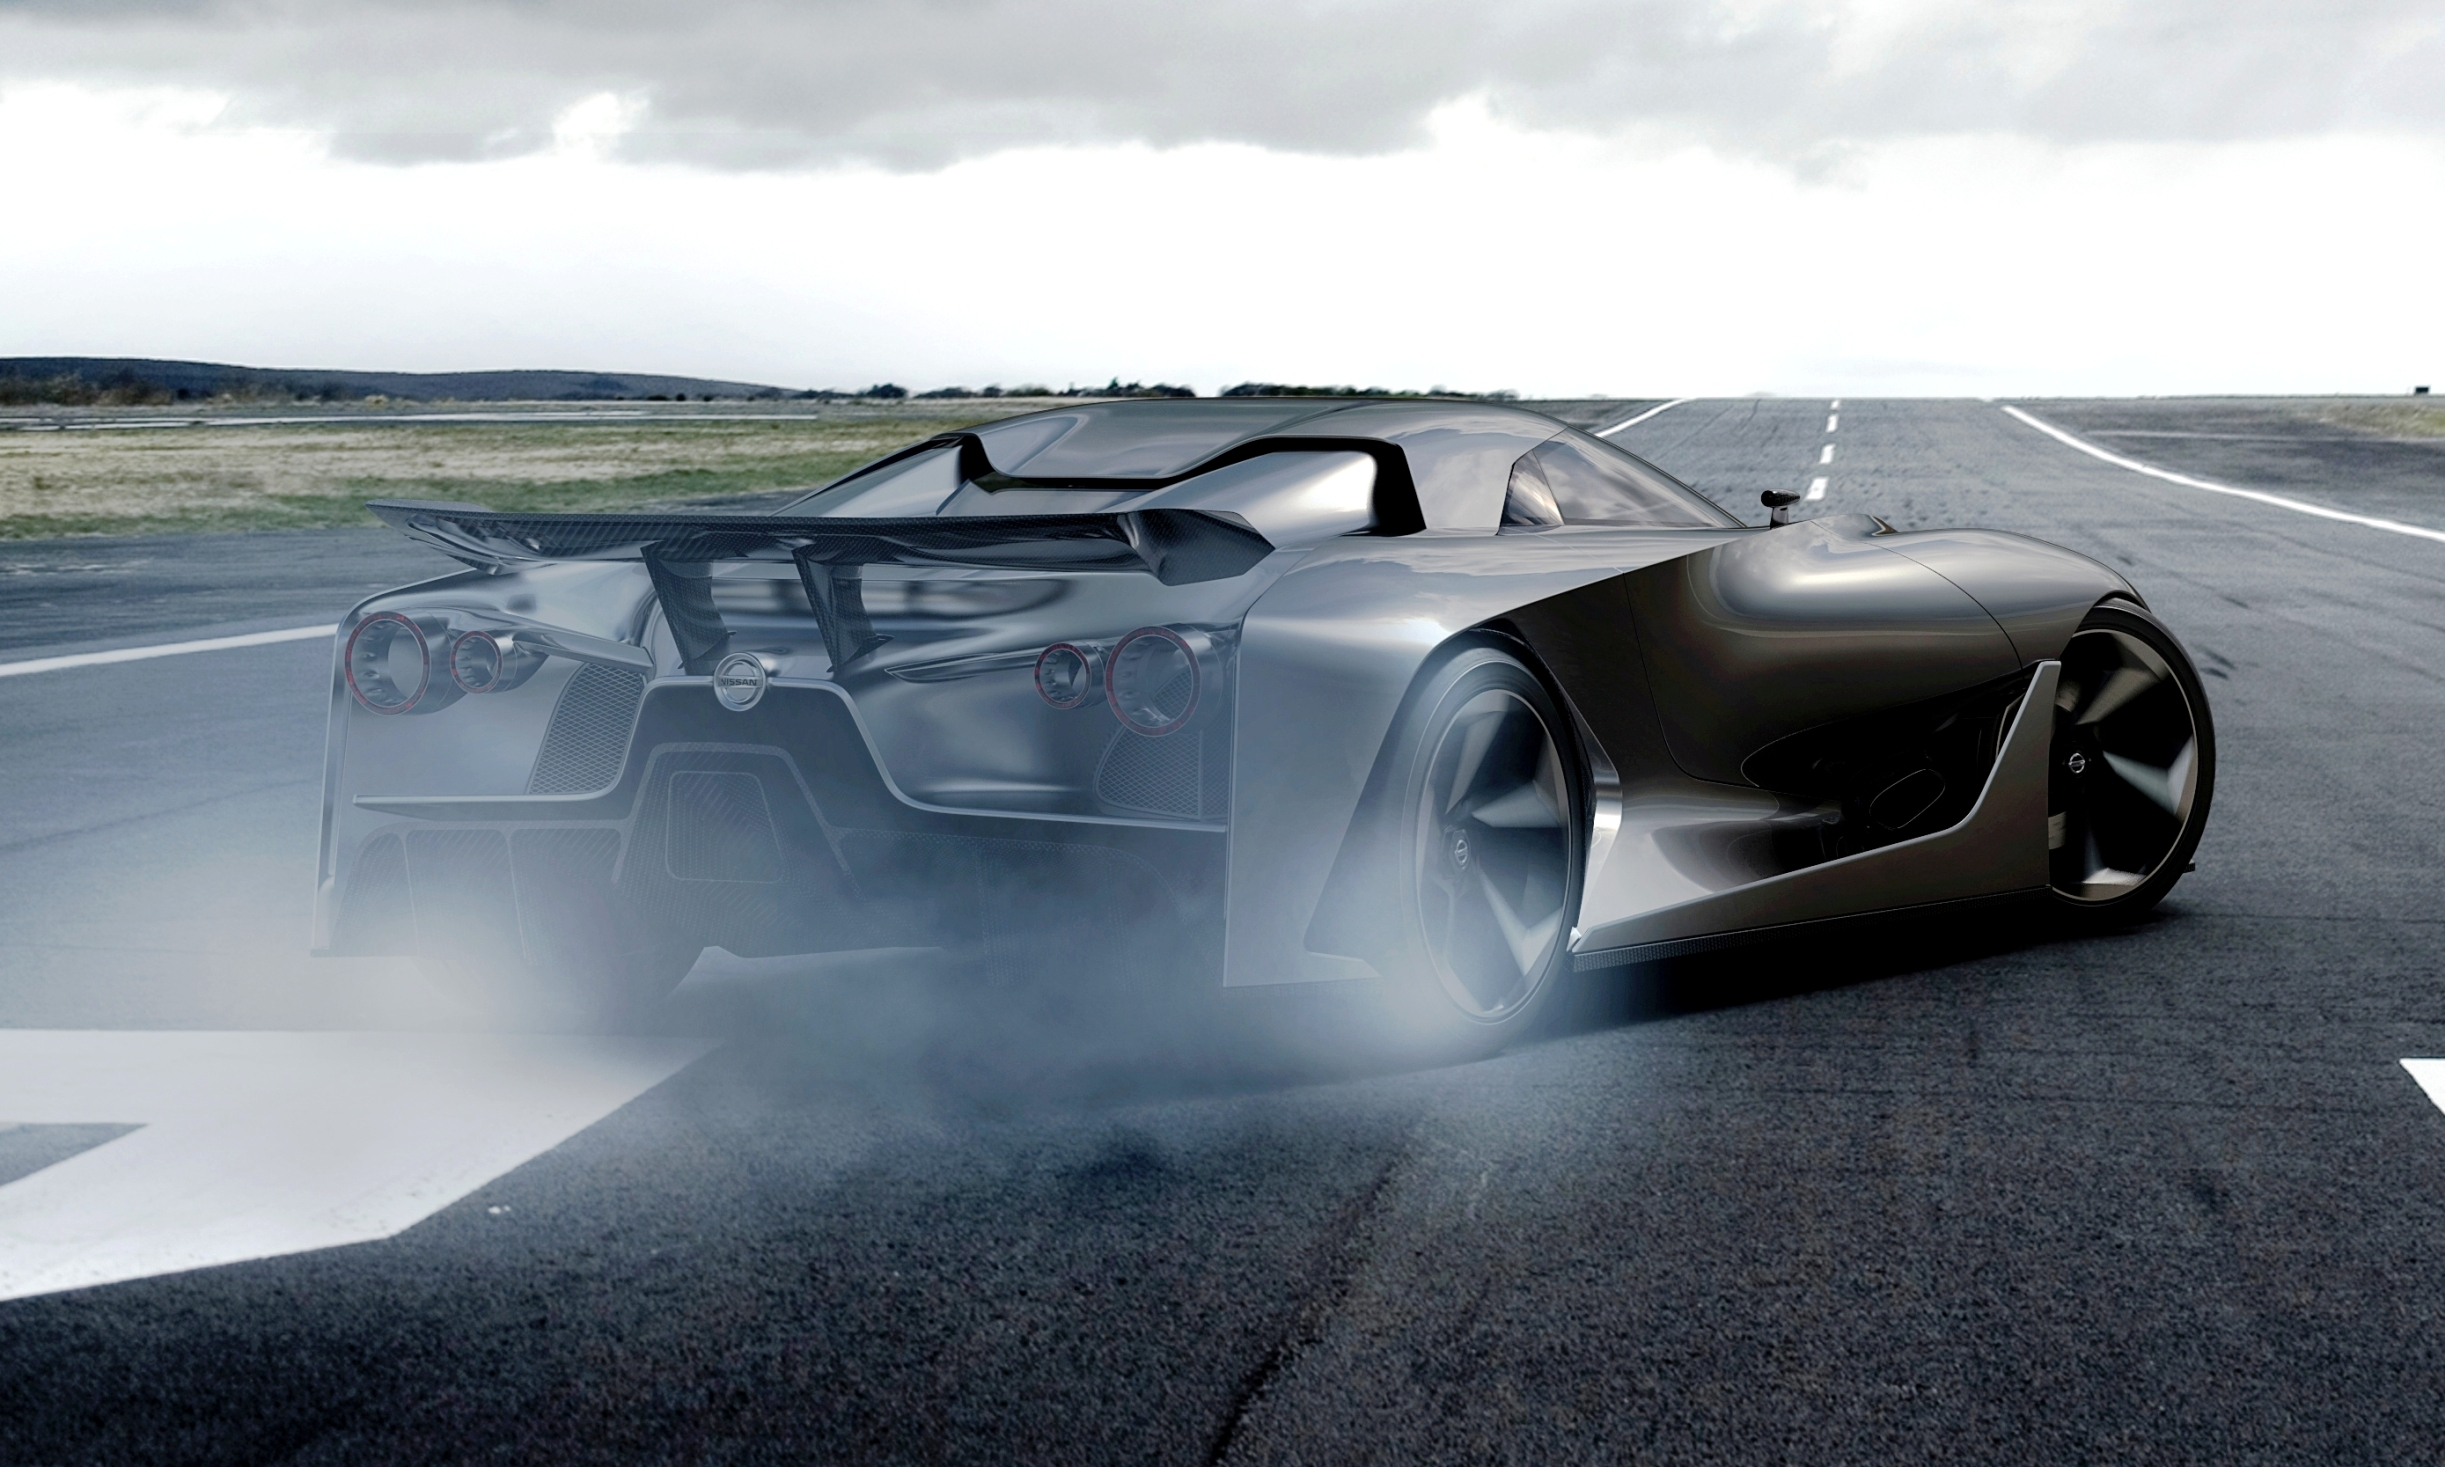 2014 Nissan NC2020 VGT In 12 New Photos Ahead of Goodwood ...